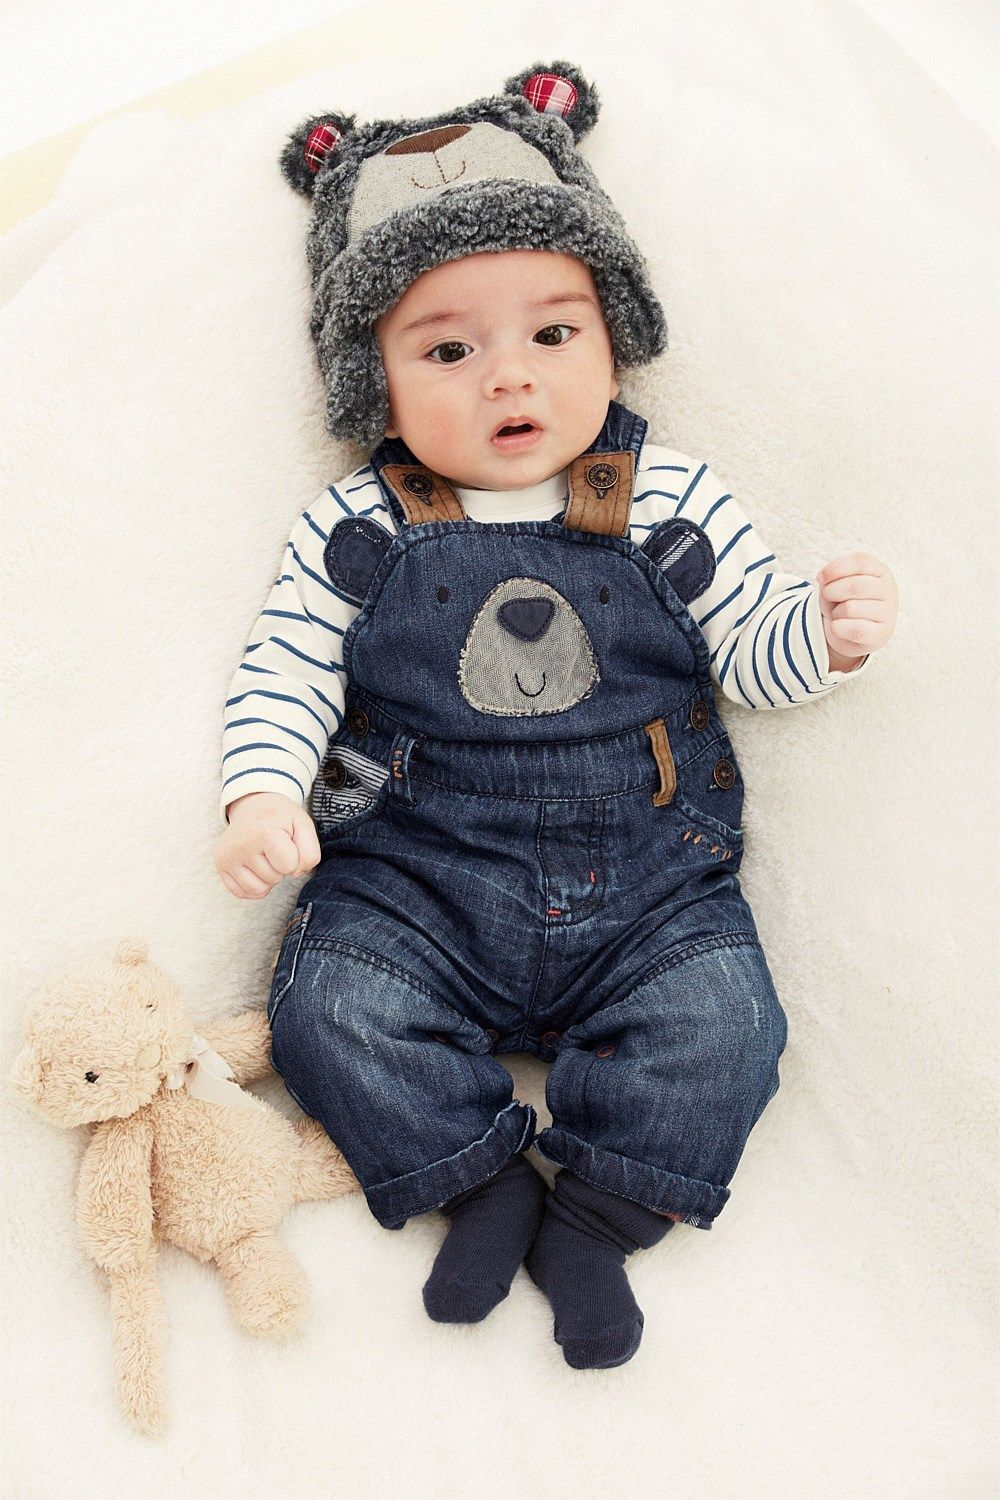 Baby cute boy clothes newborn photo advise to wear for everyday in 2019